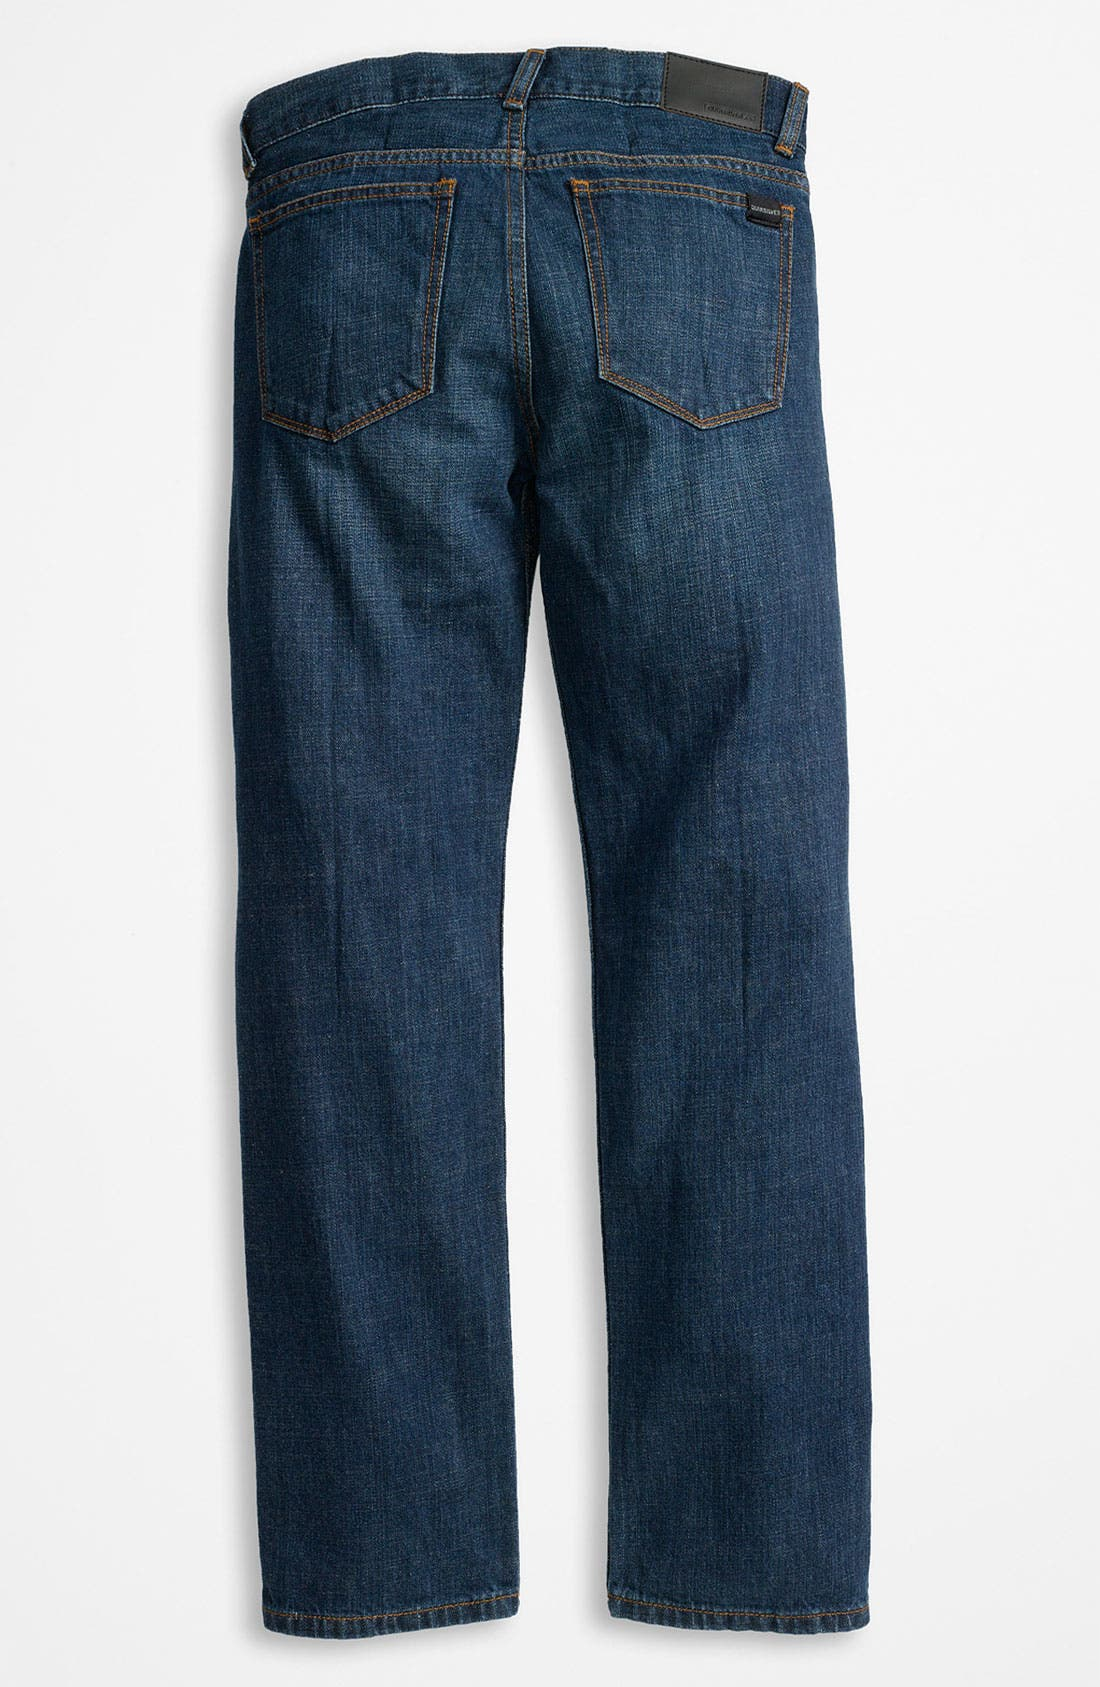 Alternate Image 1 Selected - Quiksilver 'Revolver' Jeans (Little Boys)